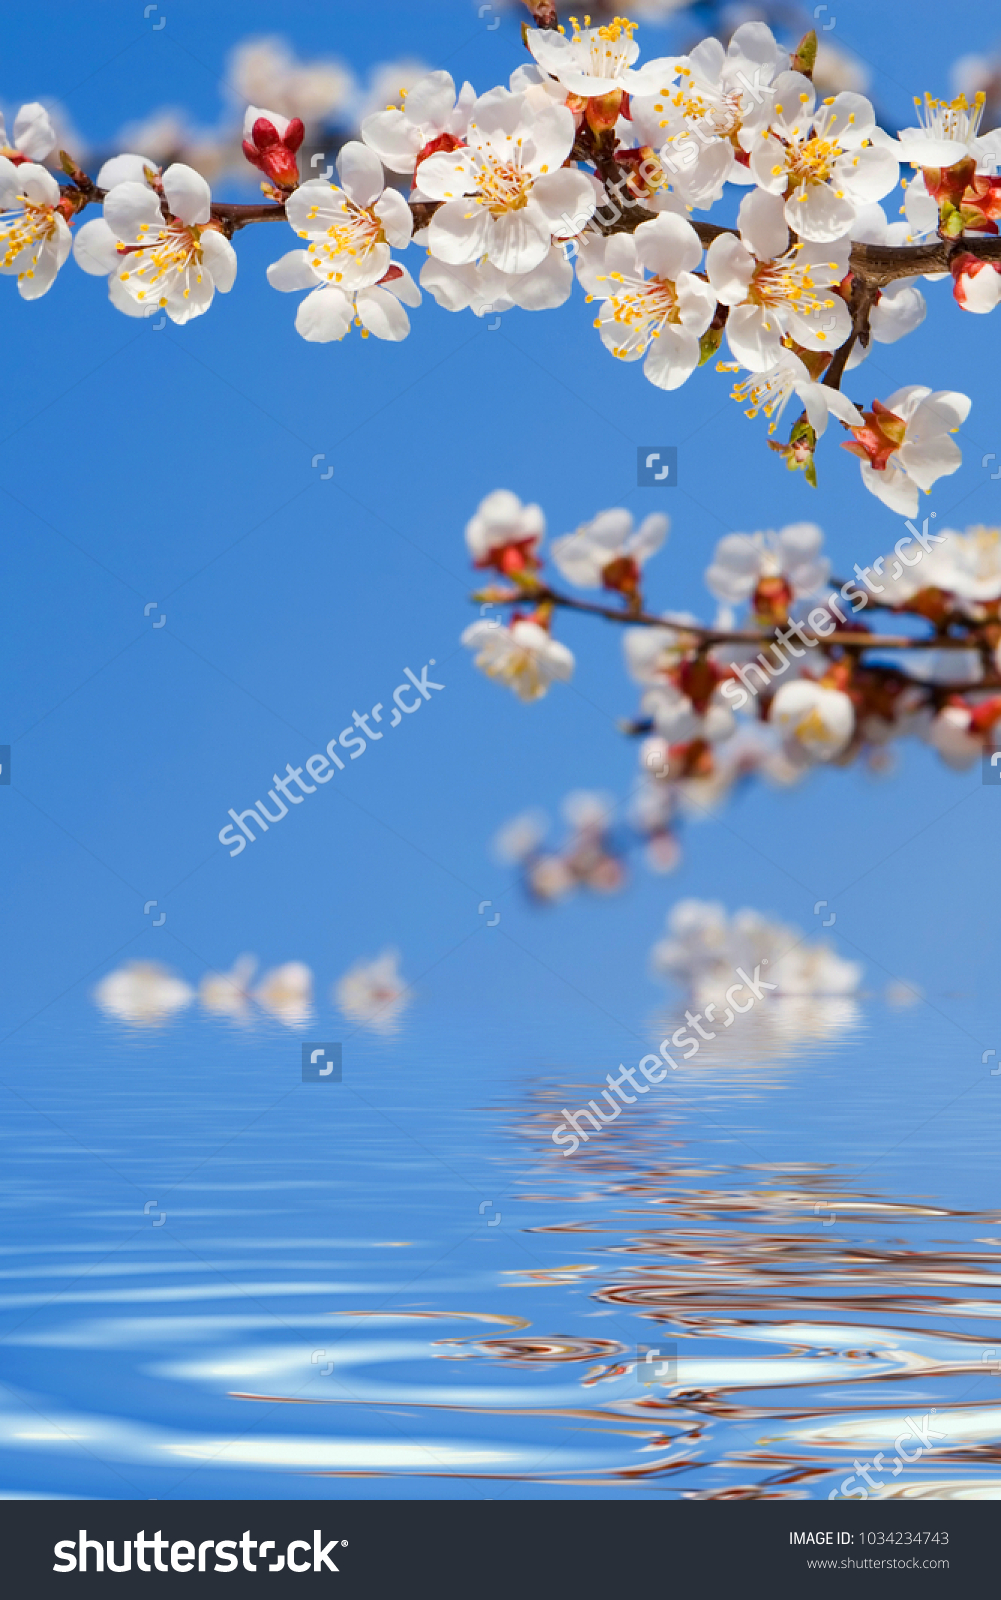 Spring beauty blooming flowers trees on stock photo 1034234743 blooming flowers of trees on the blue sky background and water izmirmasajfo